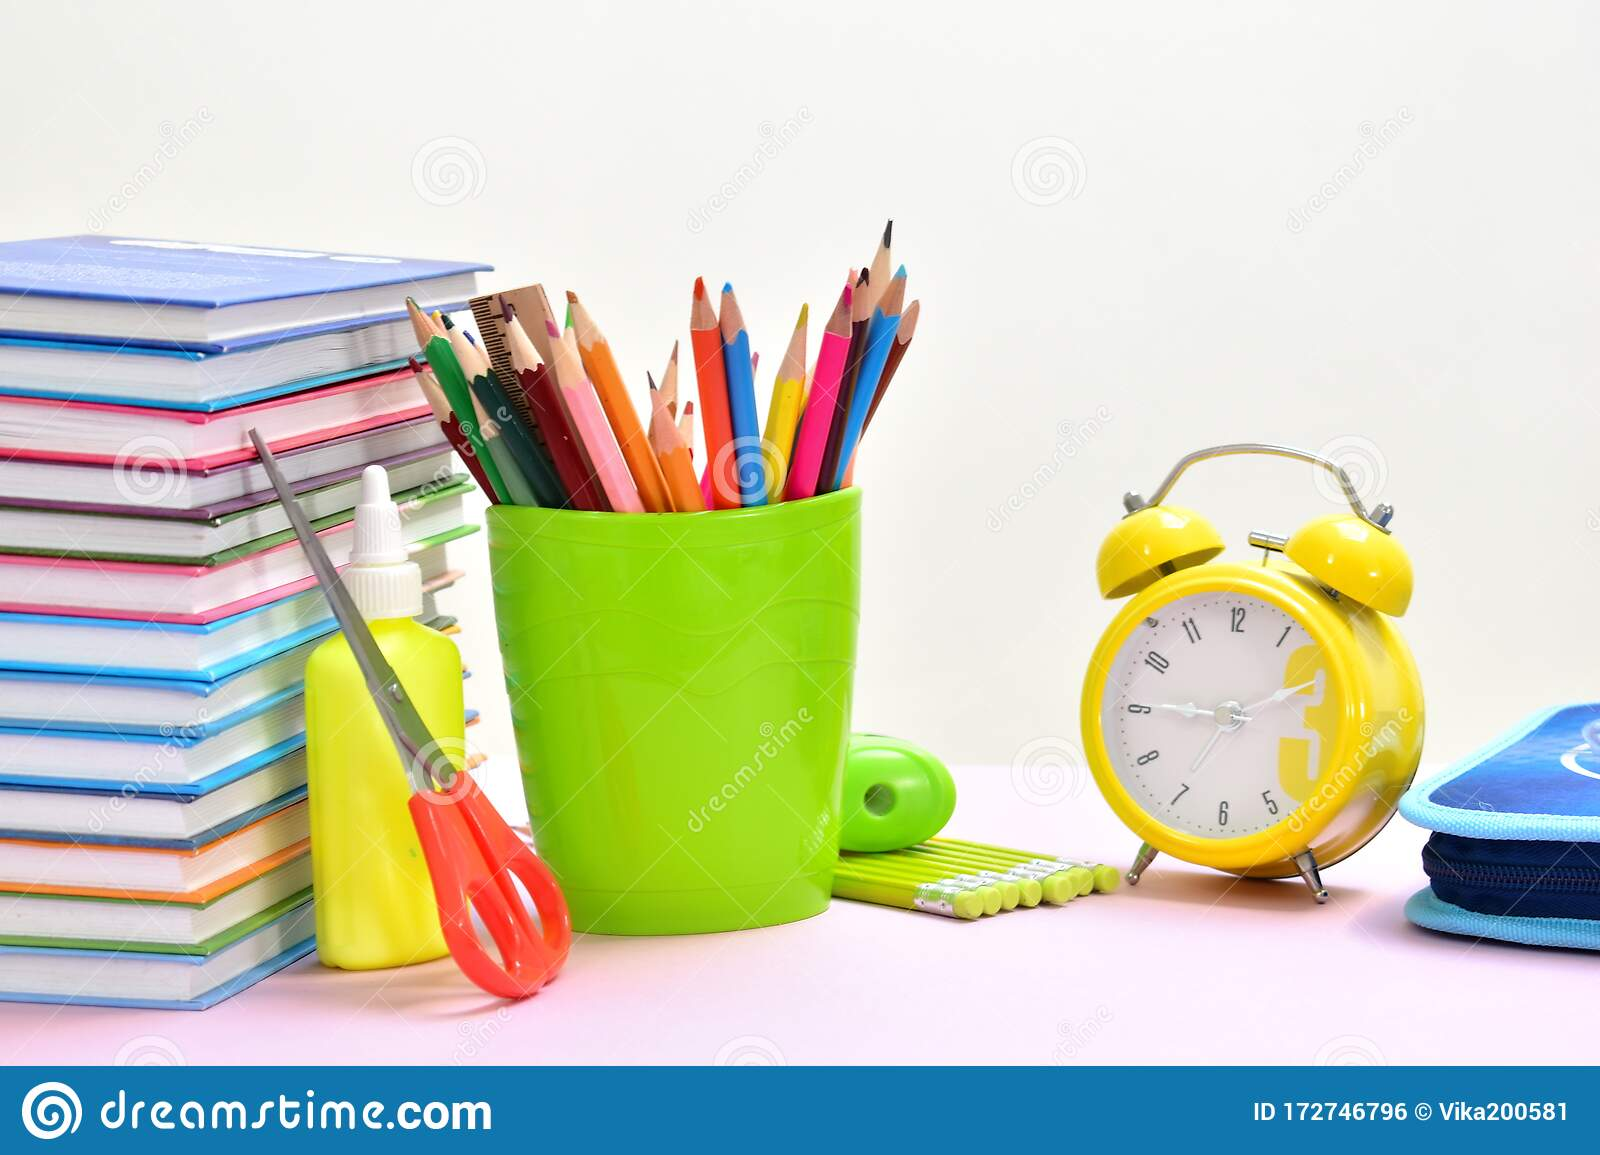 Education Background Stationery Training Time School Knowledge Stock Photo Image Of Paint Book 172746796